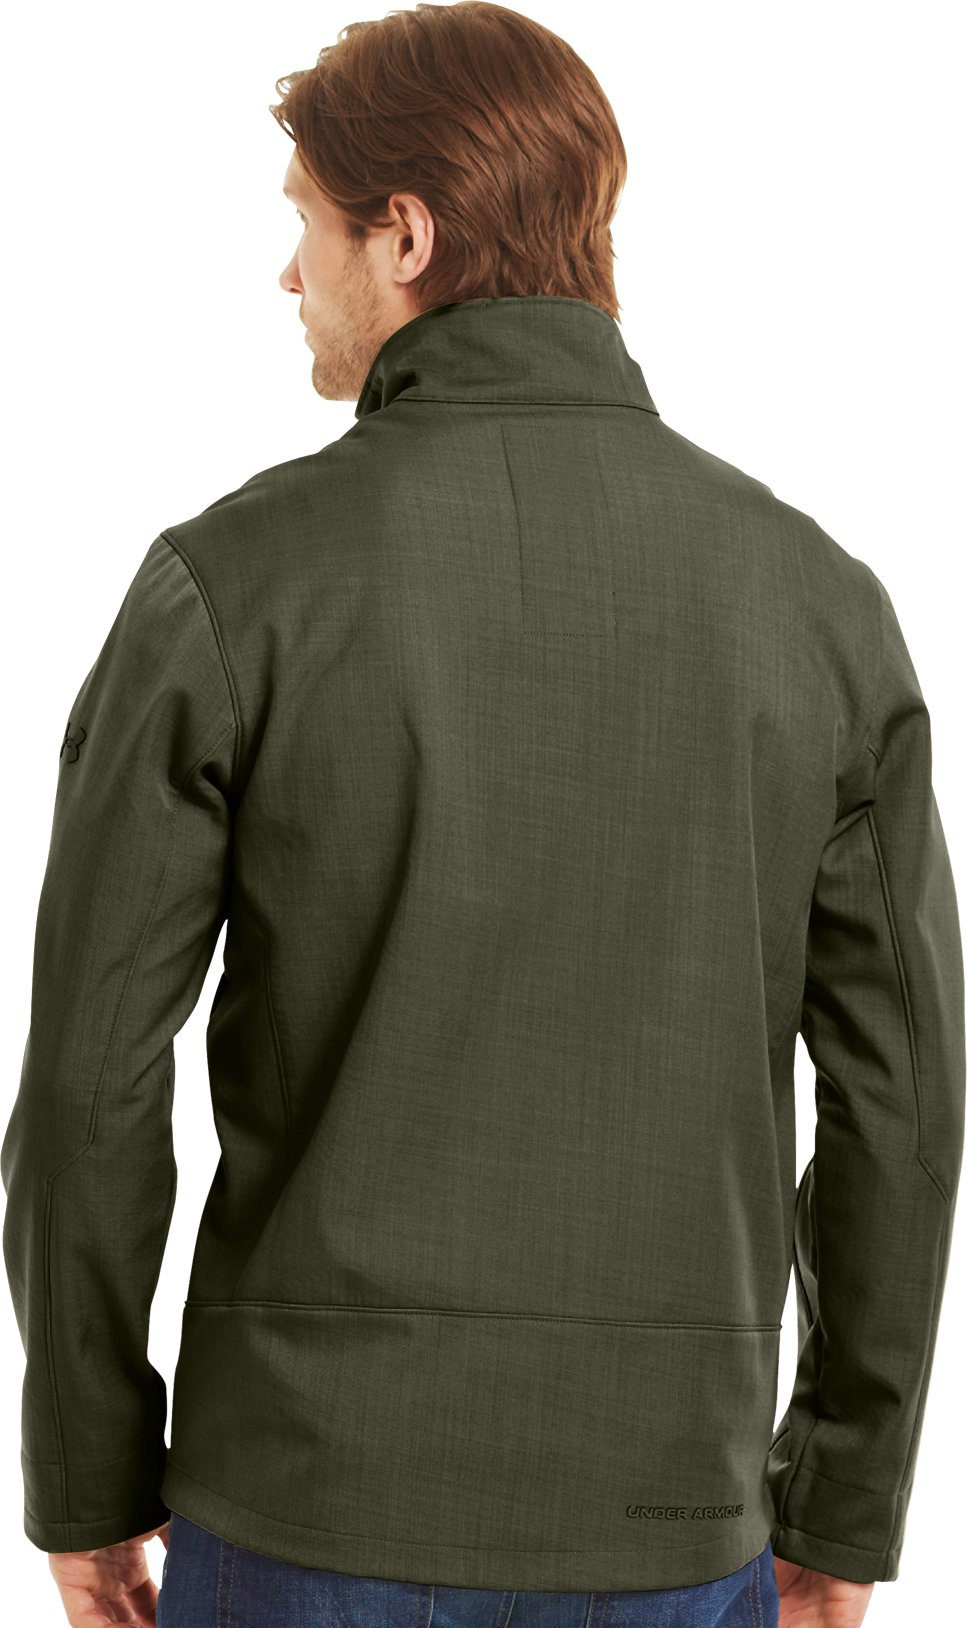 Men's ColdGear® Infrared Radar Softshell, GREENHEAD, Back